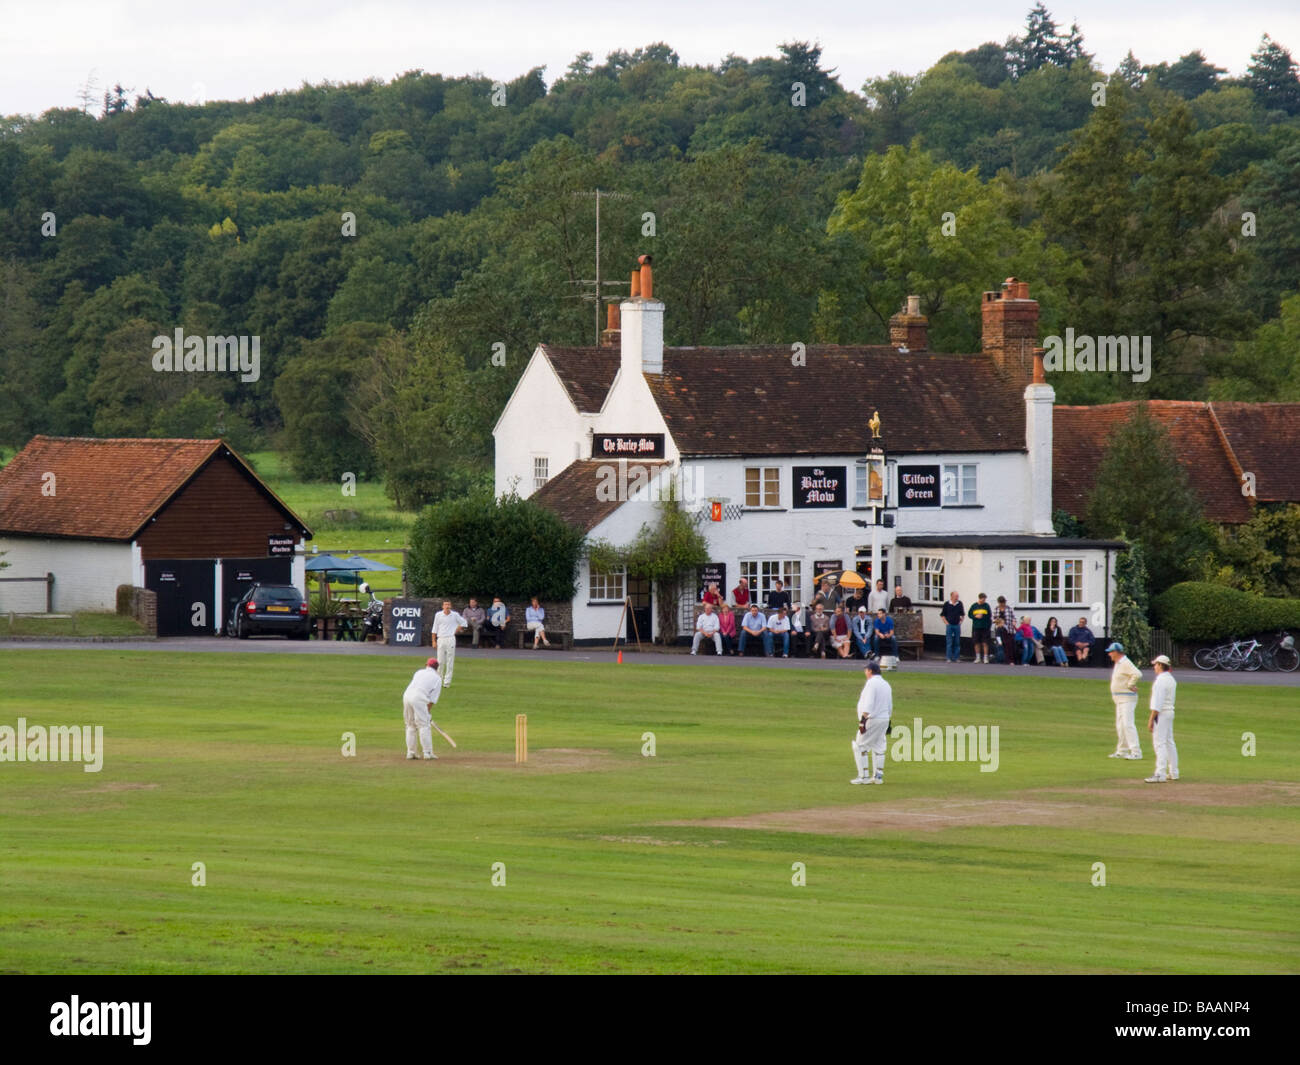 Tilford Surrey England UK Playing cricket on the village green outside the Barley Mow country pub in summer - Stock Image